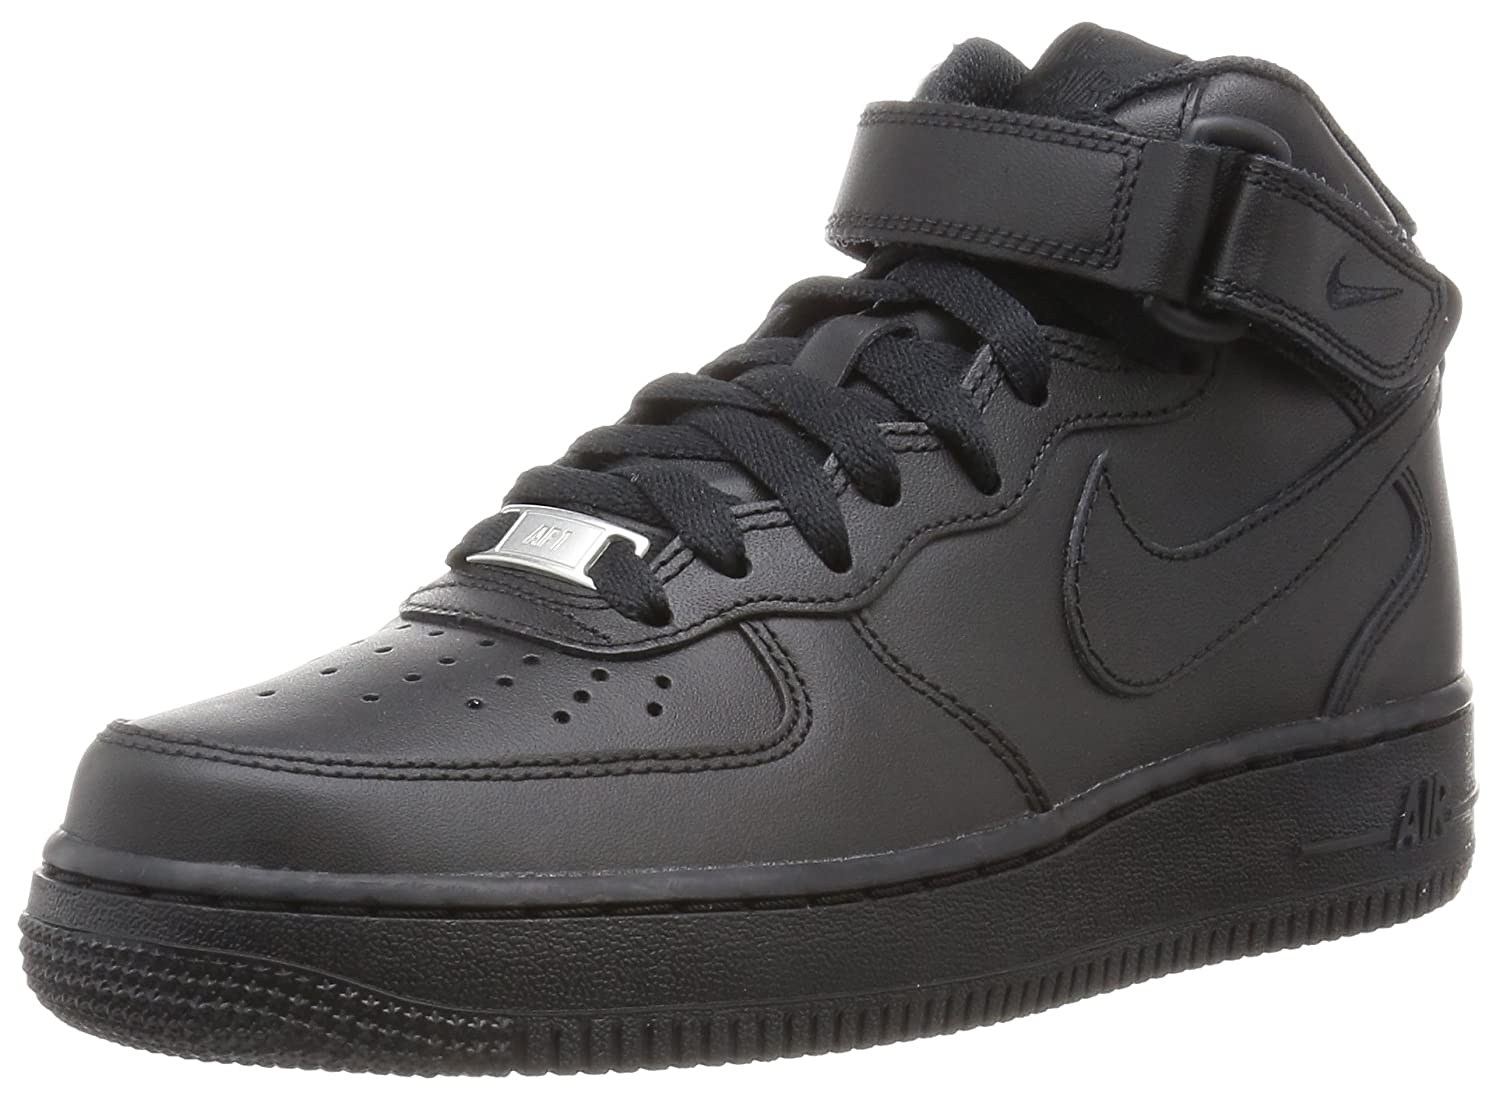 Nike Wmns Air Force 1 07 Mid, Zapatillas Altas para Mujer: MainApps: Amazon.es: Zapatos y complementos